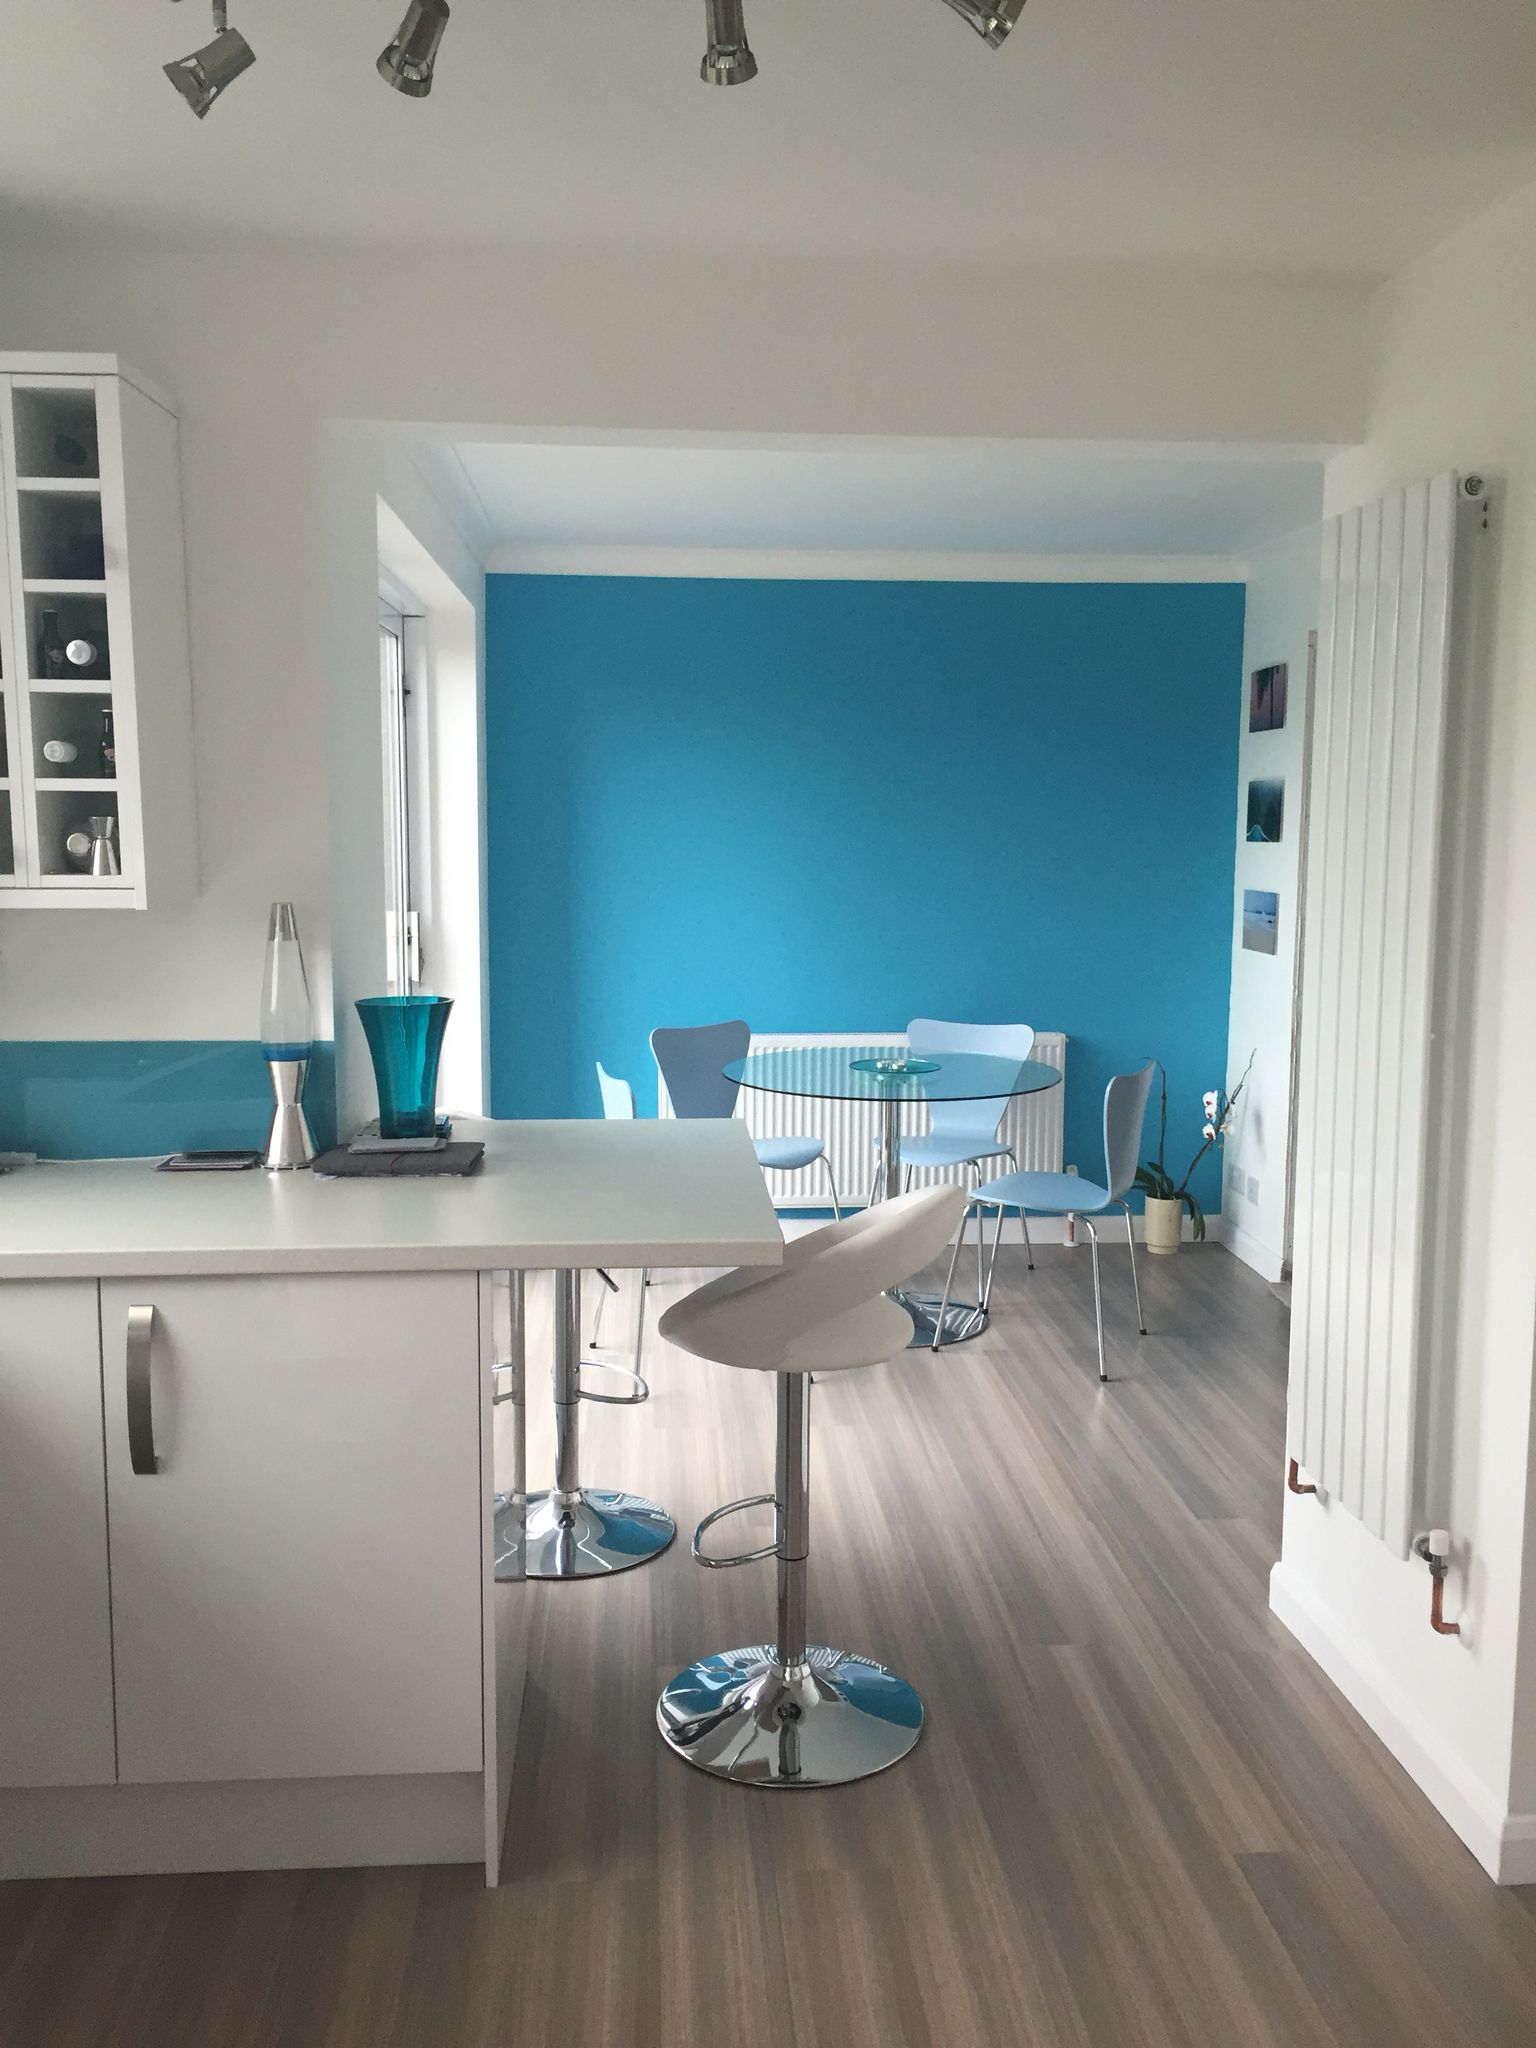 Blue and teal kitchen diner. Blue feature wall   Teal Modern ...